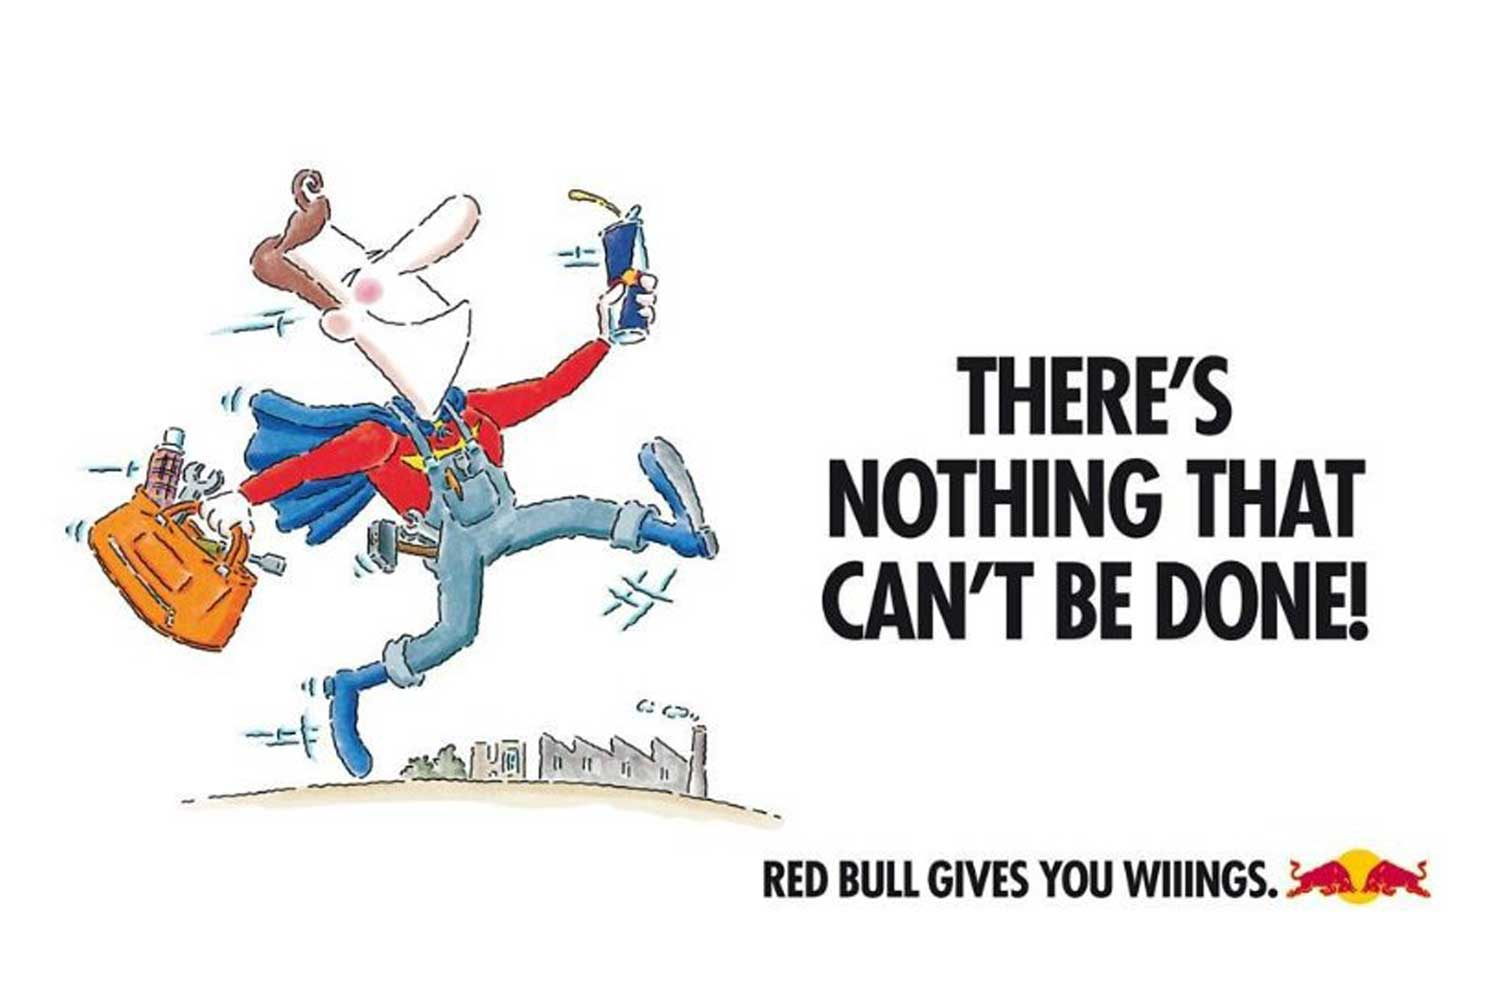 redbull gives you wings